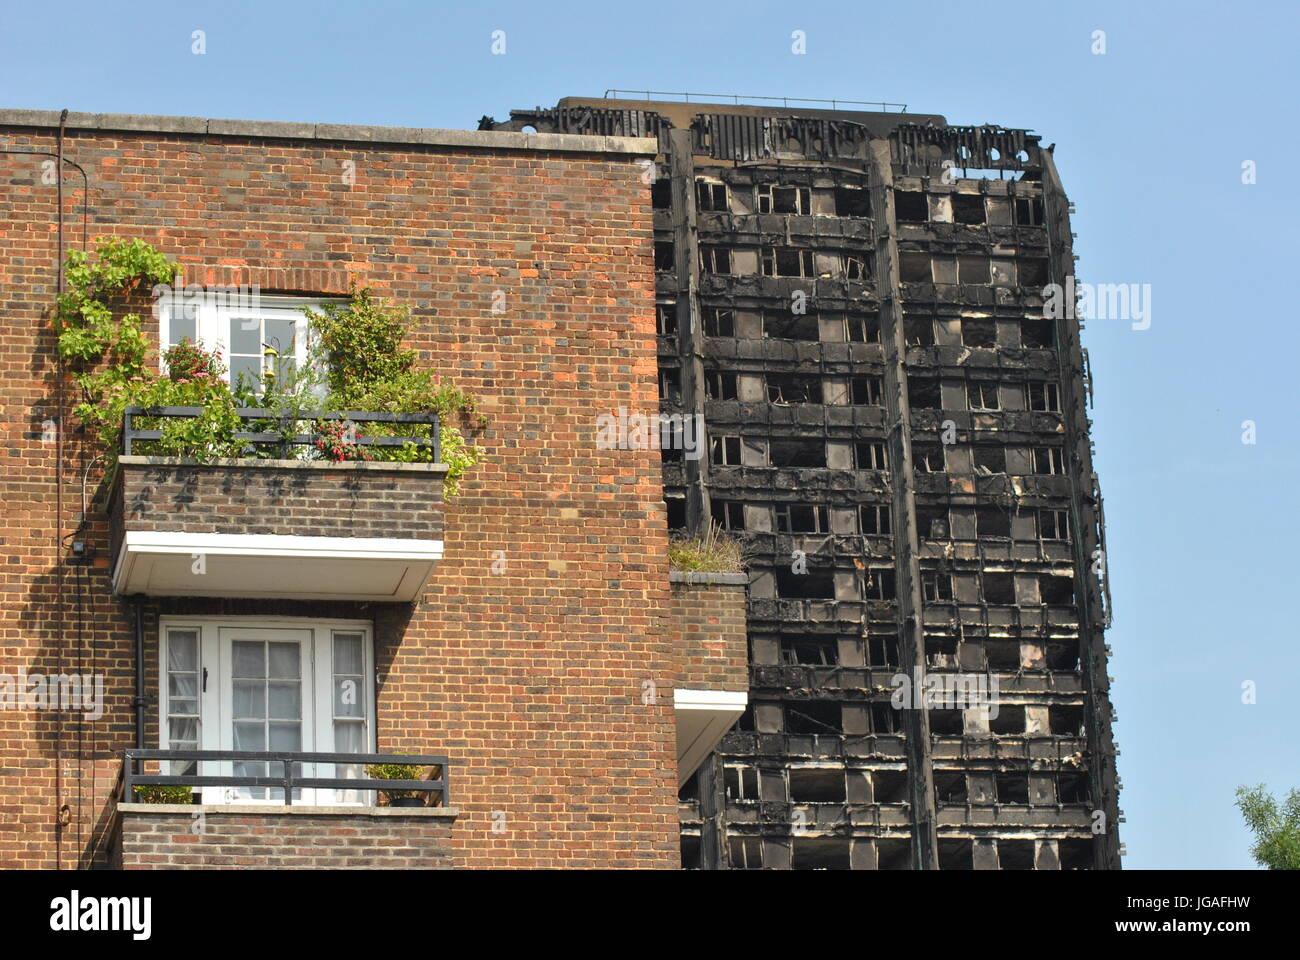 Grenfell Tower Disaster, Skeletal Remains of Tower, juxtaposed with private property, Latimer Road, London 19th - Stock Image